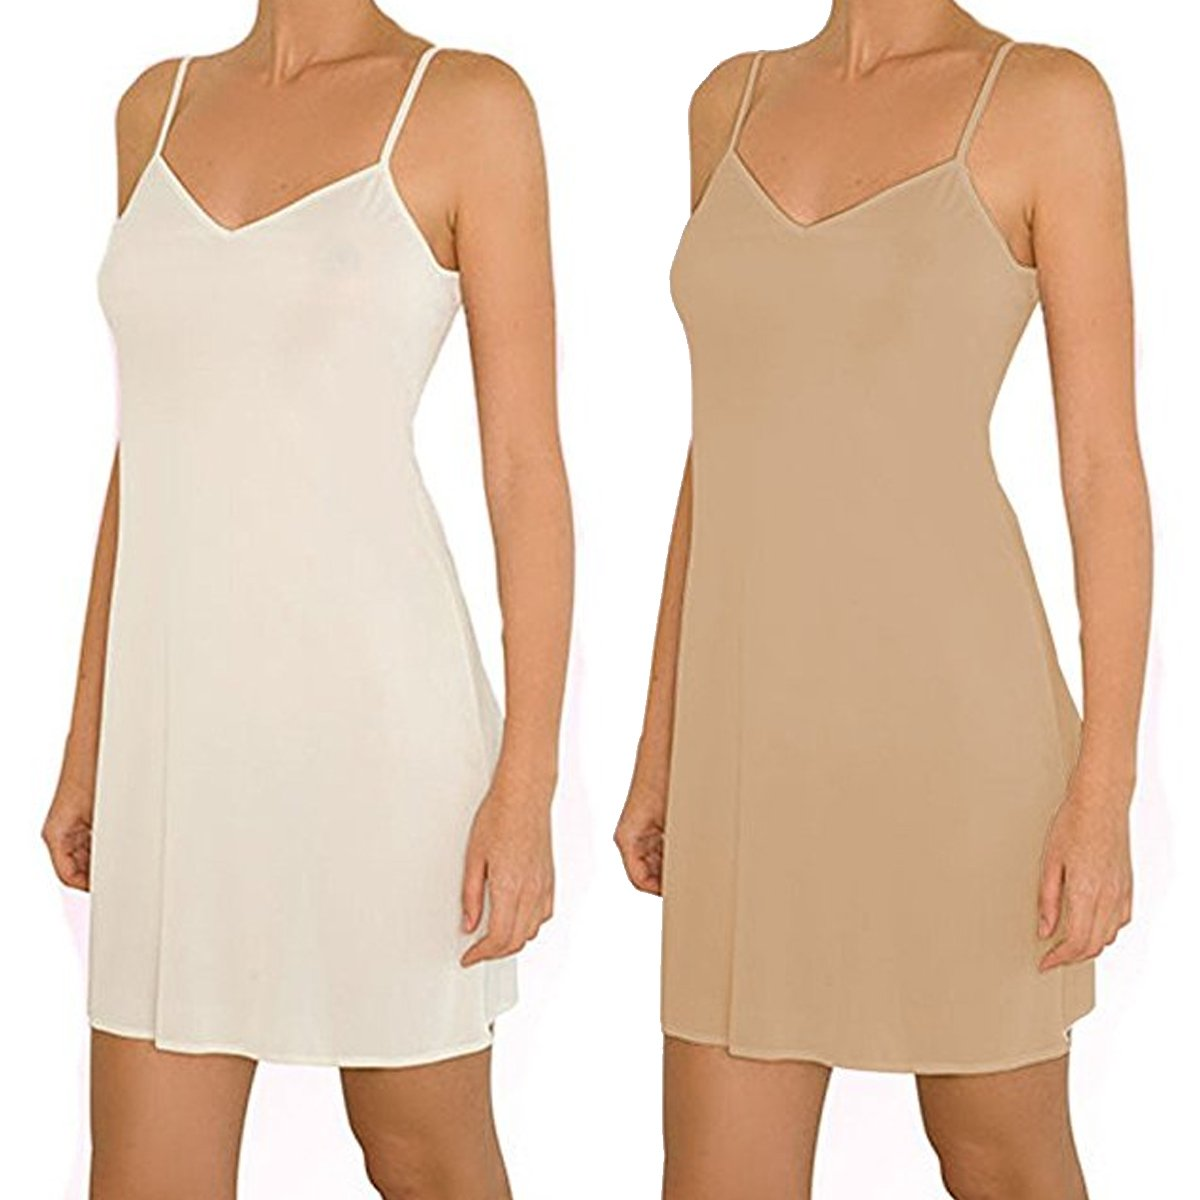 Anemone Women's Non-Cling Silky Smooth Full Slip ANE-381655